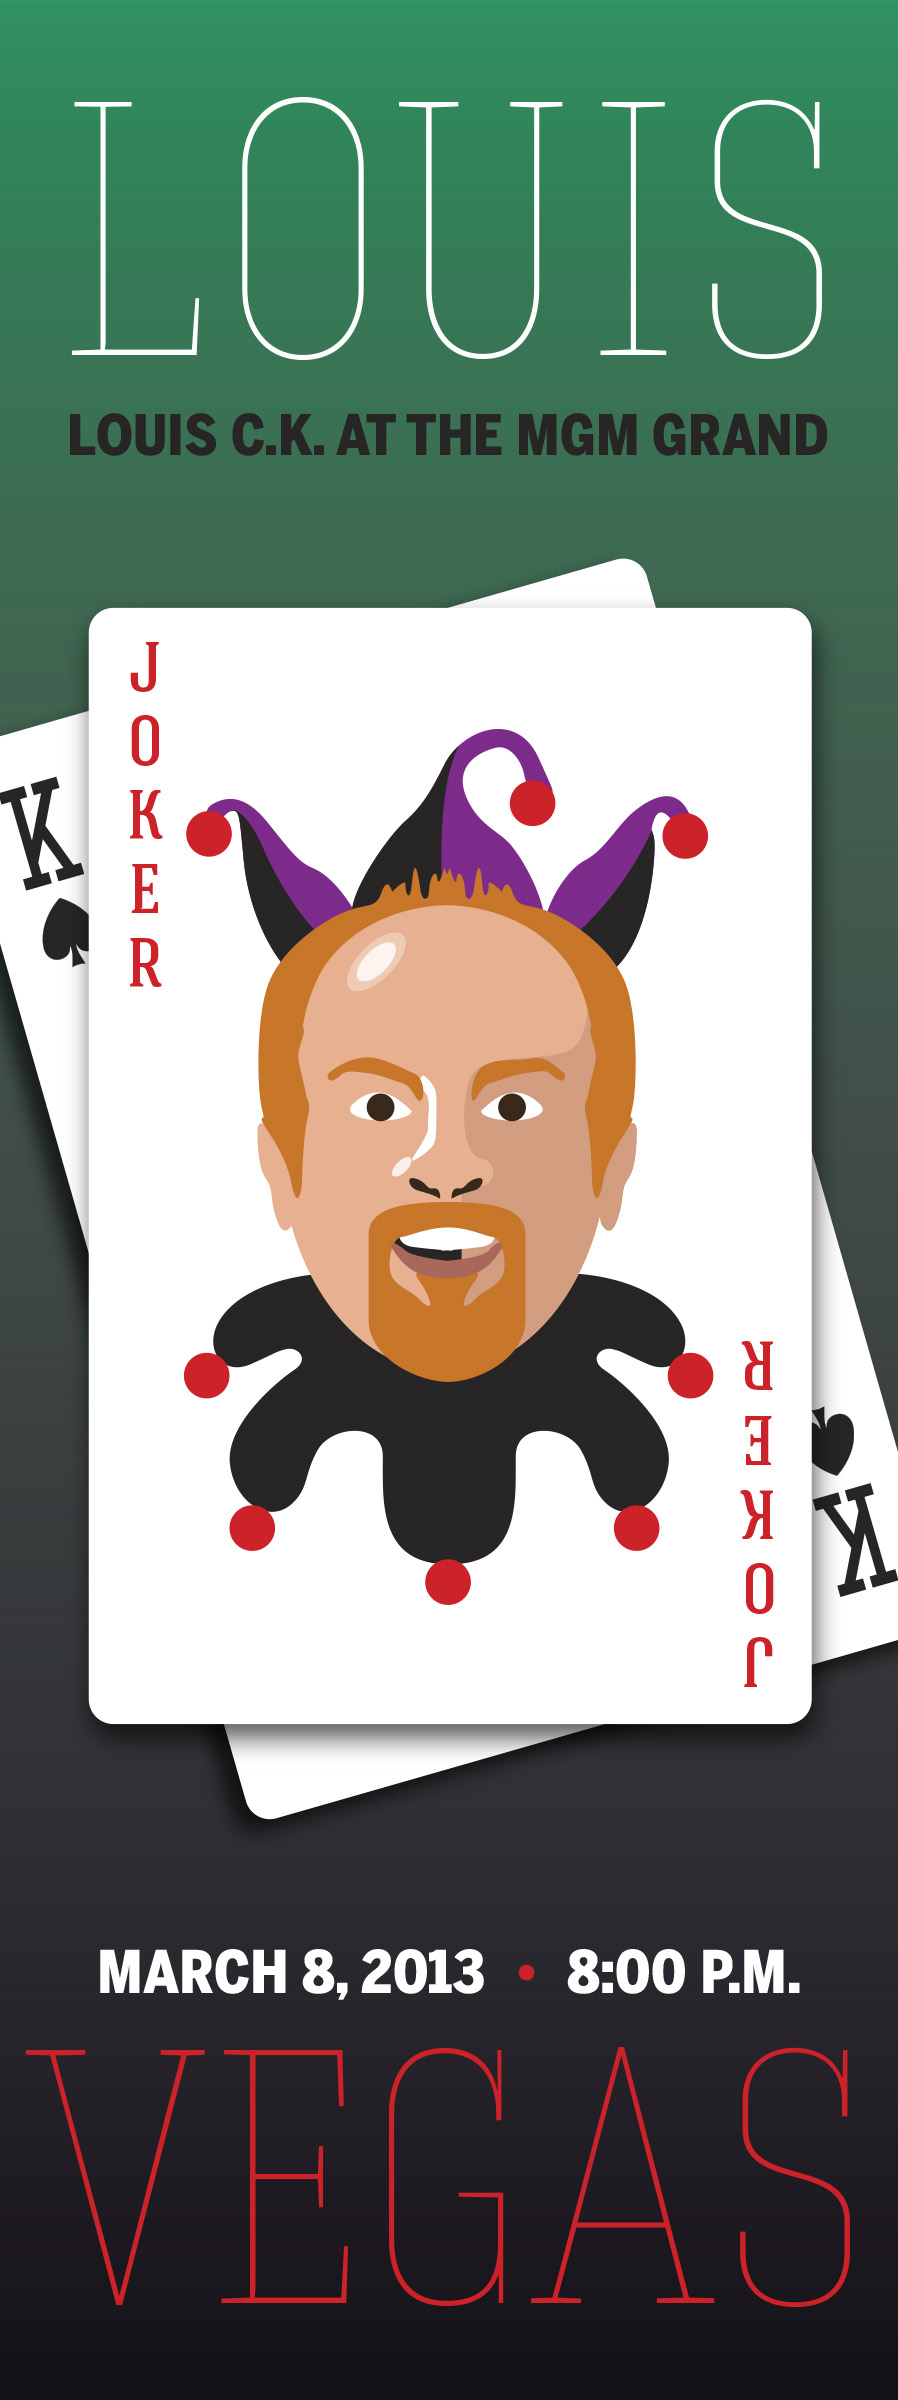 Louis C.K. @ The MGM Grand in Las Vegas - image 1 - student project